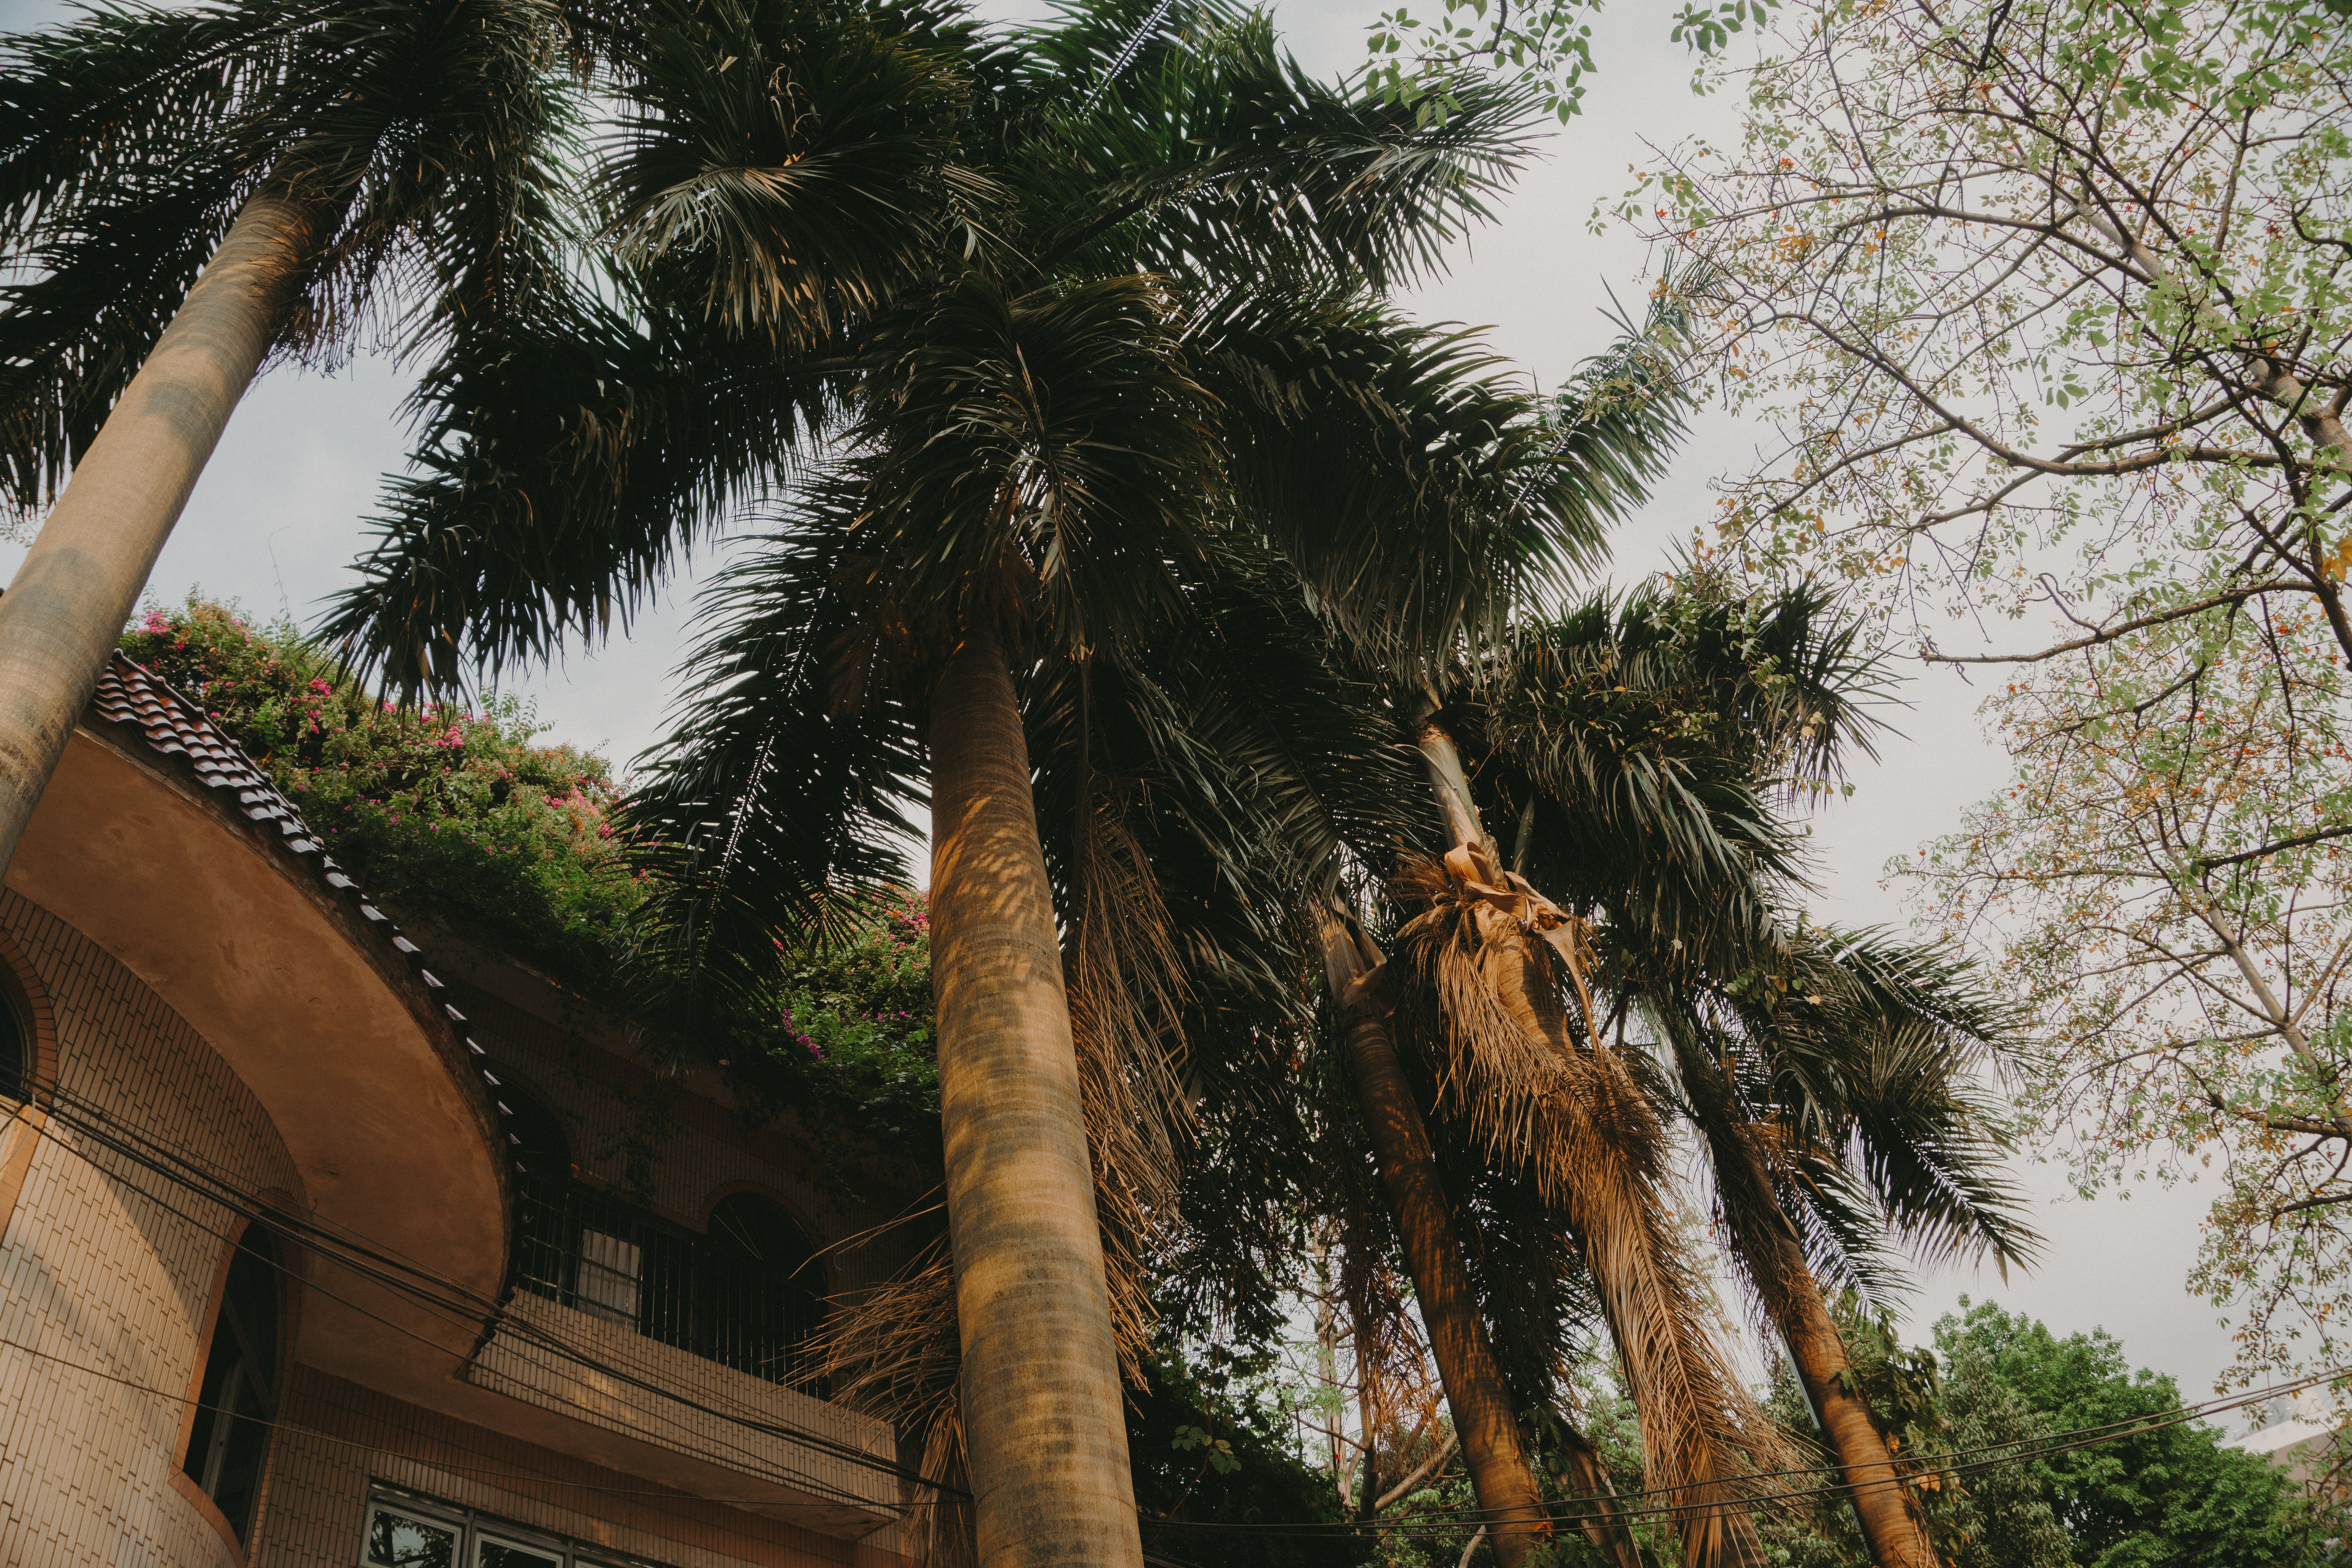 Palm Trees Under Gray Skies